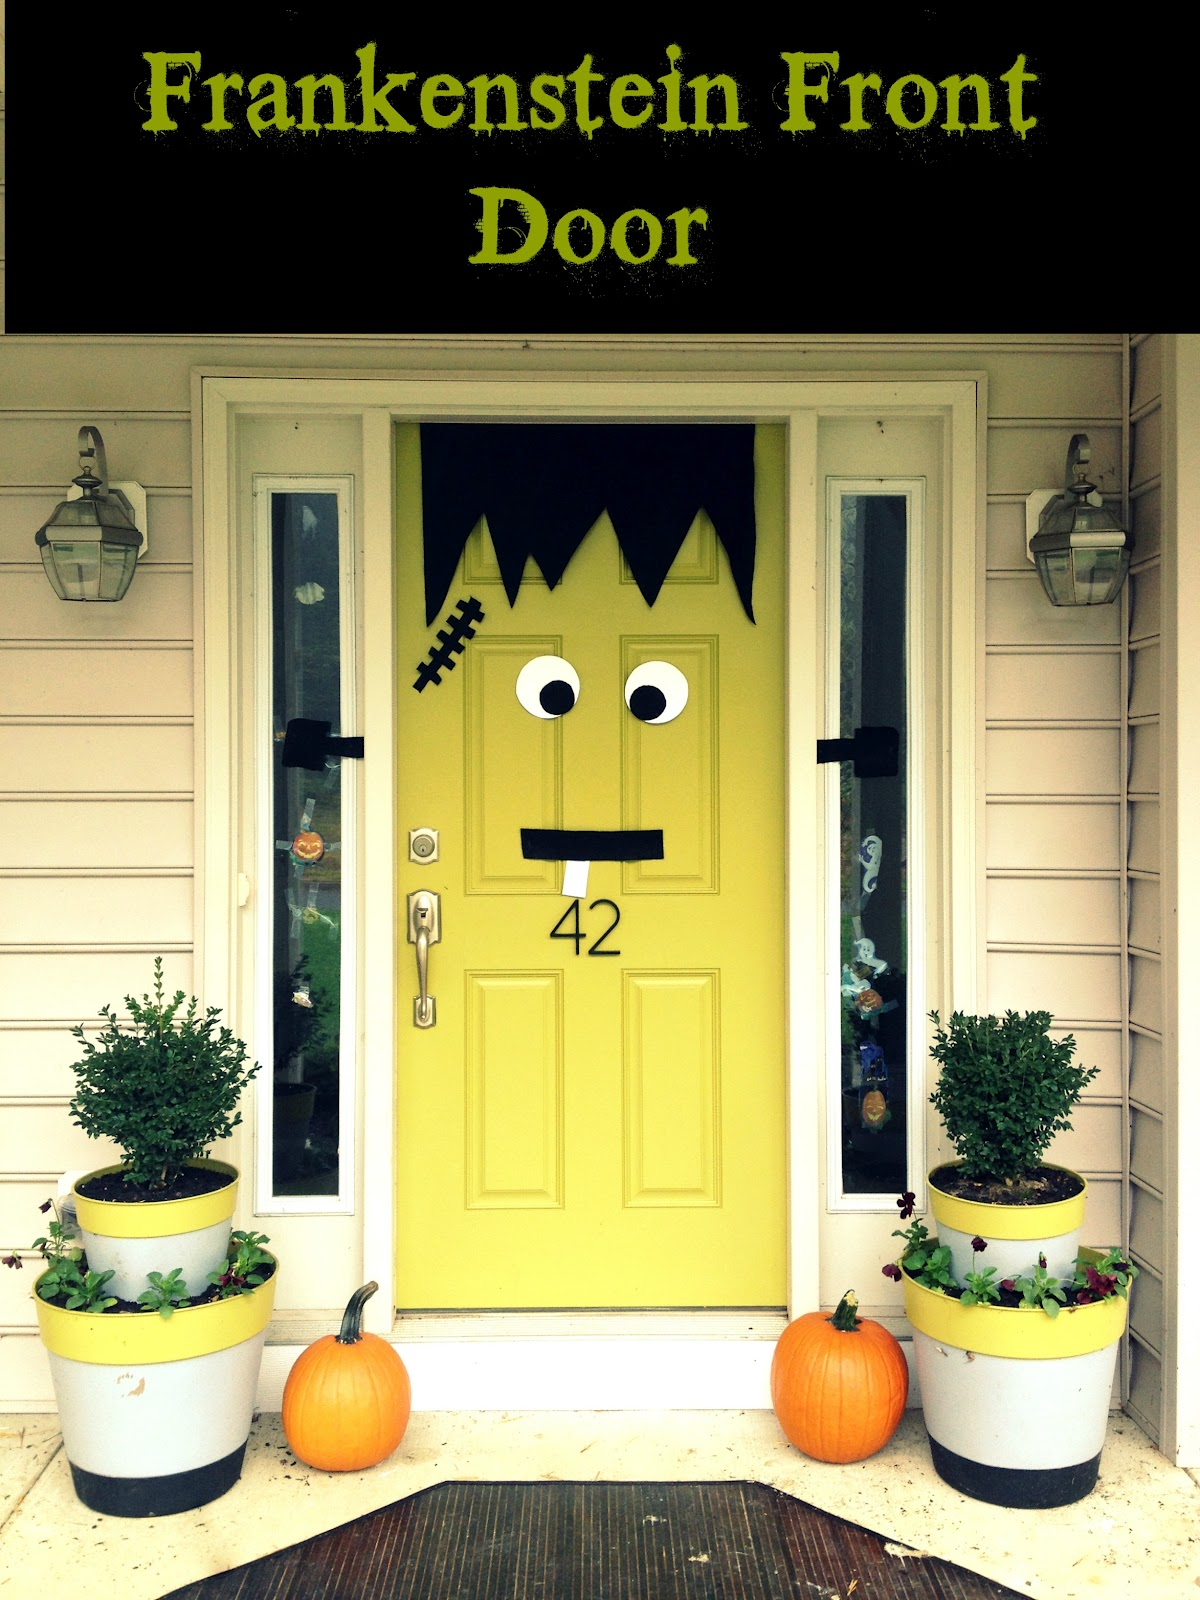 Halloween Decor 2012 & Halloween Decor 2012 - East Coast Creative Blog